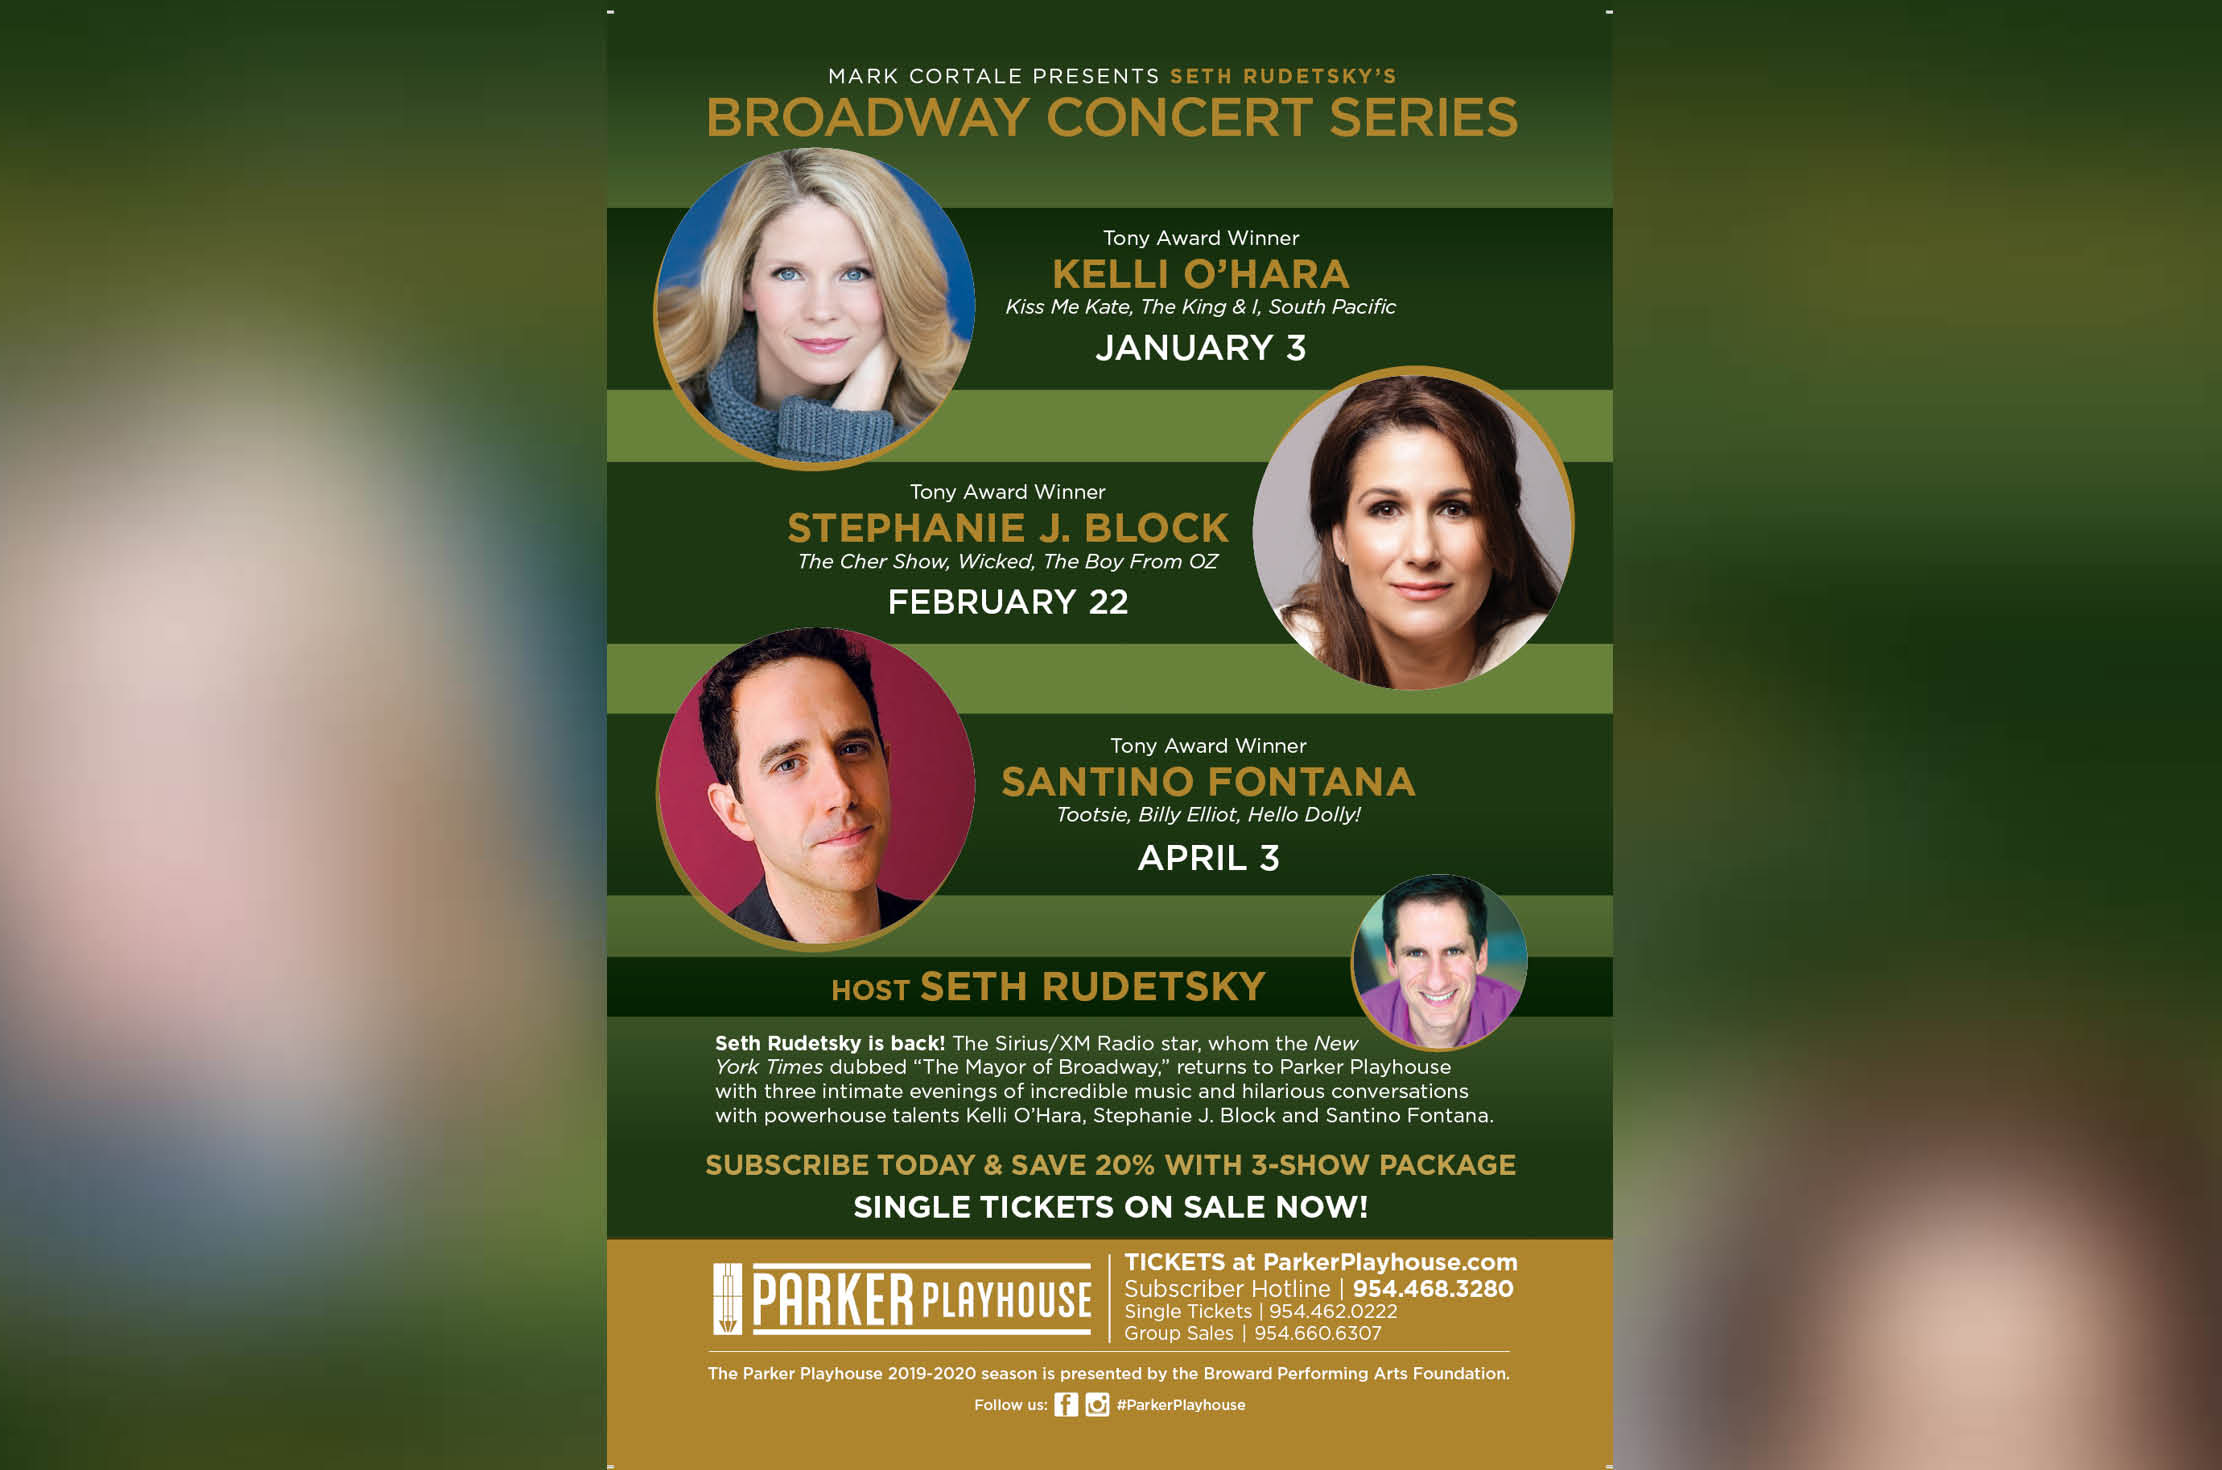 The Seth Rudetsky Broadway Concert Series